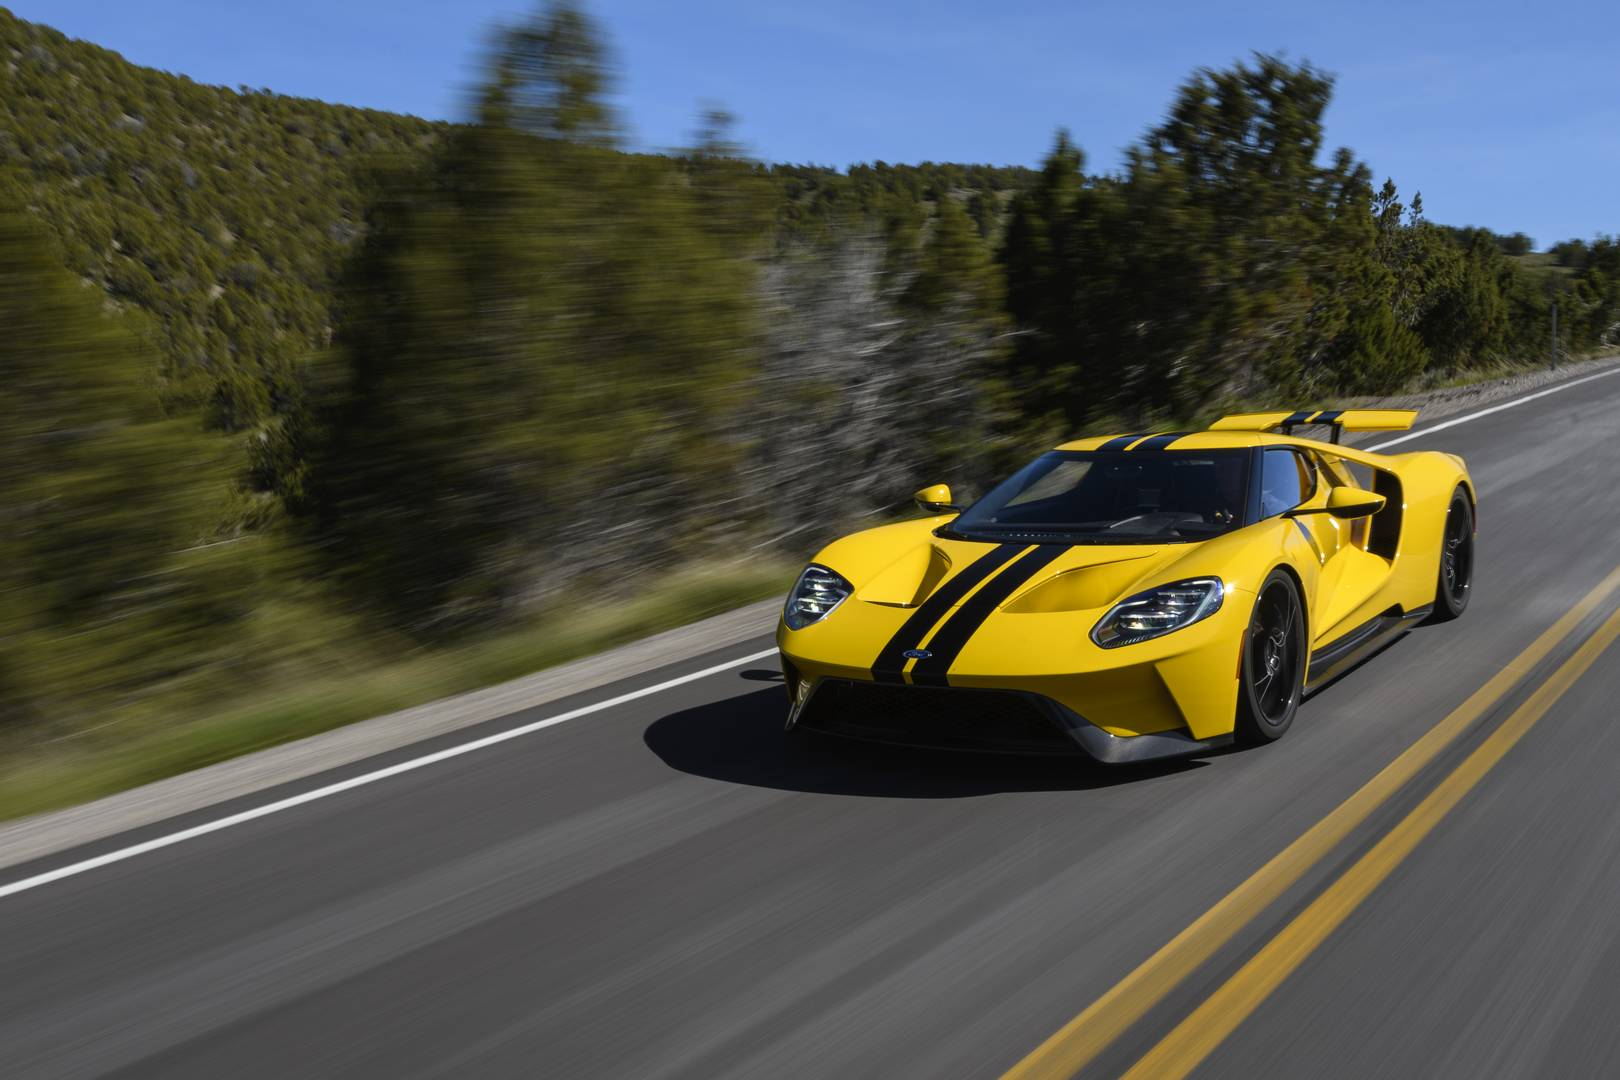 ford gt in le mans 2017 with 203011 on Four Ford Gt Race Cars Will  pete At Le Mans 104412 as well Rxc also Le Mans 2017 Mega Gallery as well 24 Heures Du Mans 2015 Ford Gt40 12 1968 Victorieuse De La Le in addition Ford GT40 Mk2 72476.